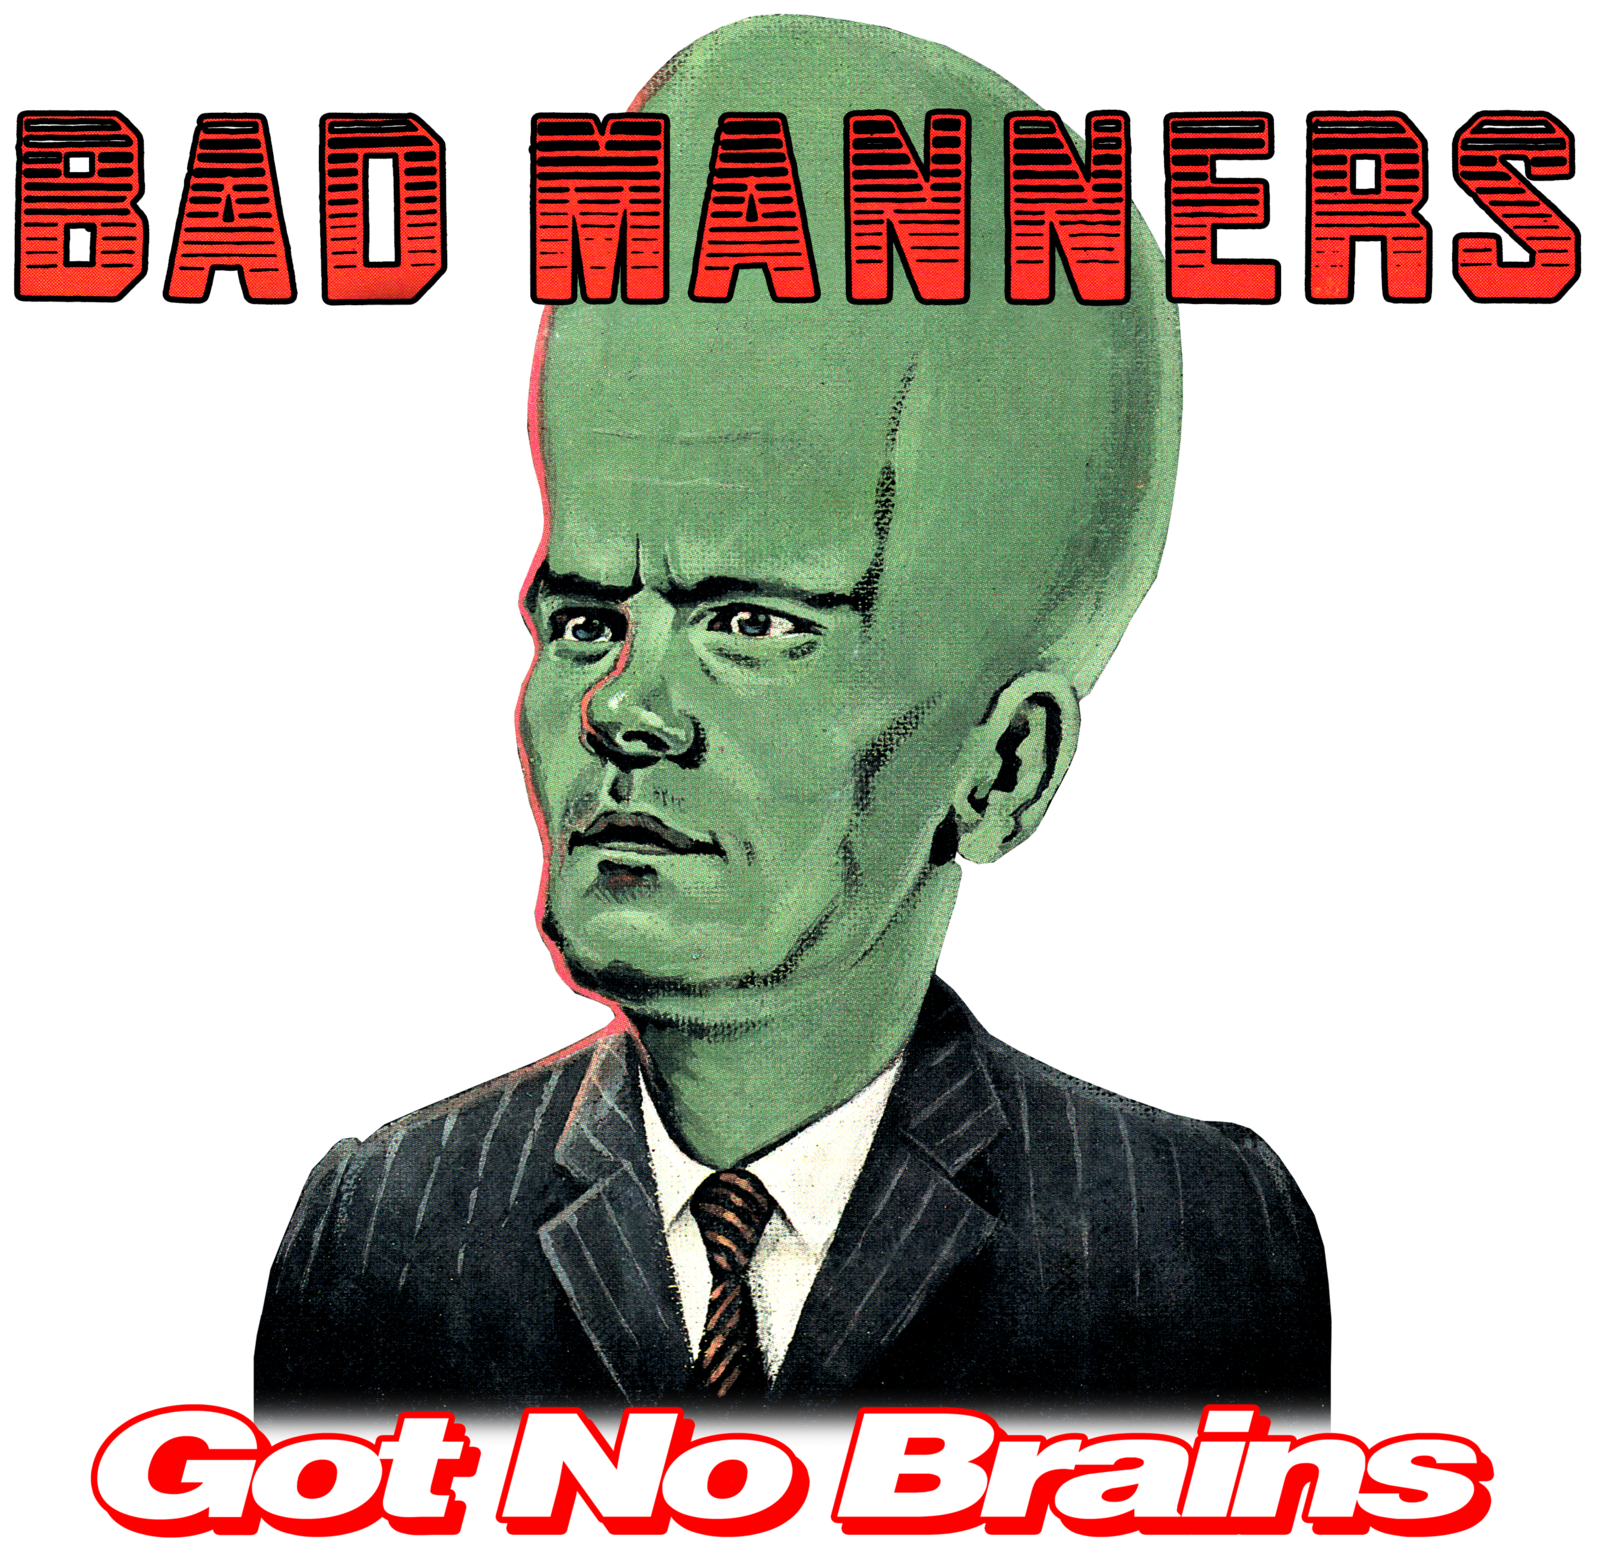 Got No Brains ladies t-shirt ska 2Tone bad manners skinhead specials madness